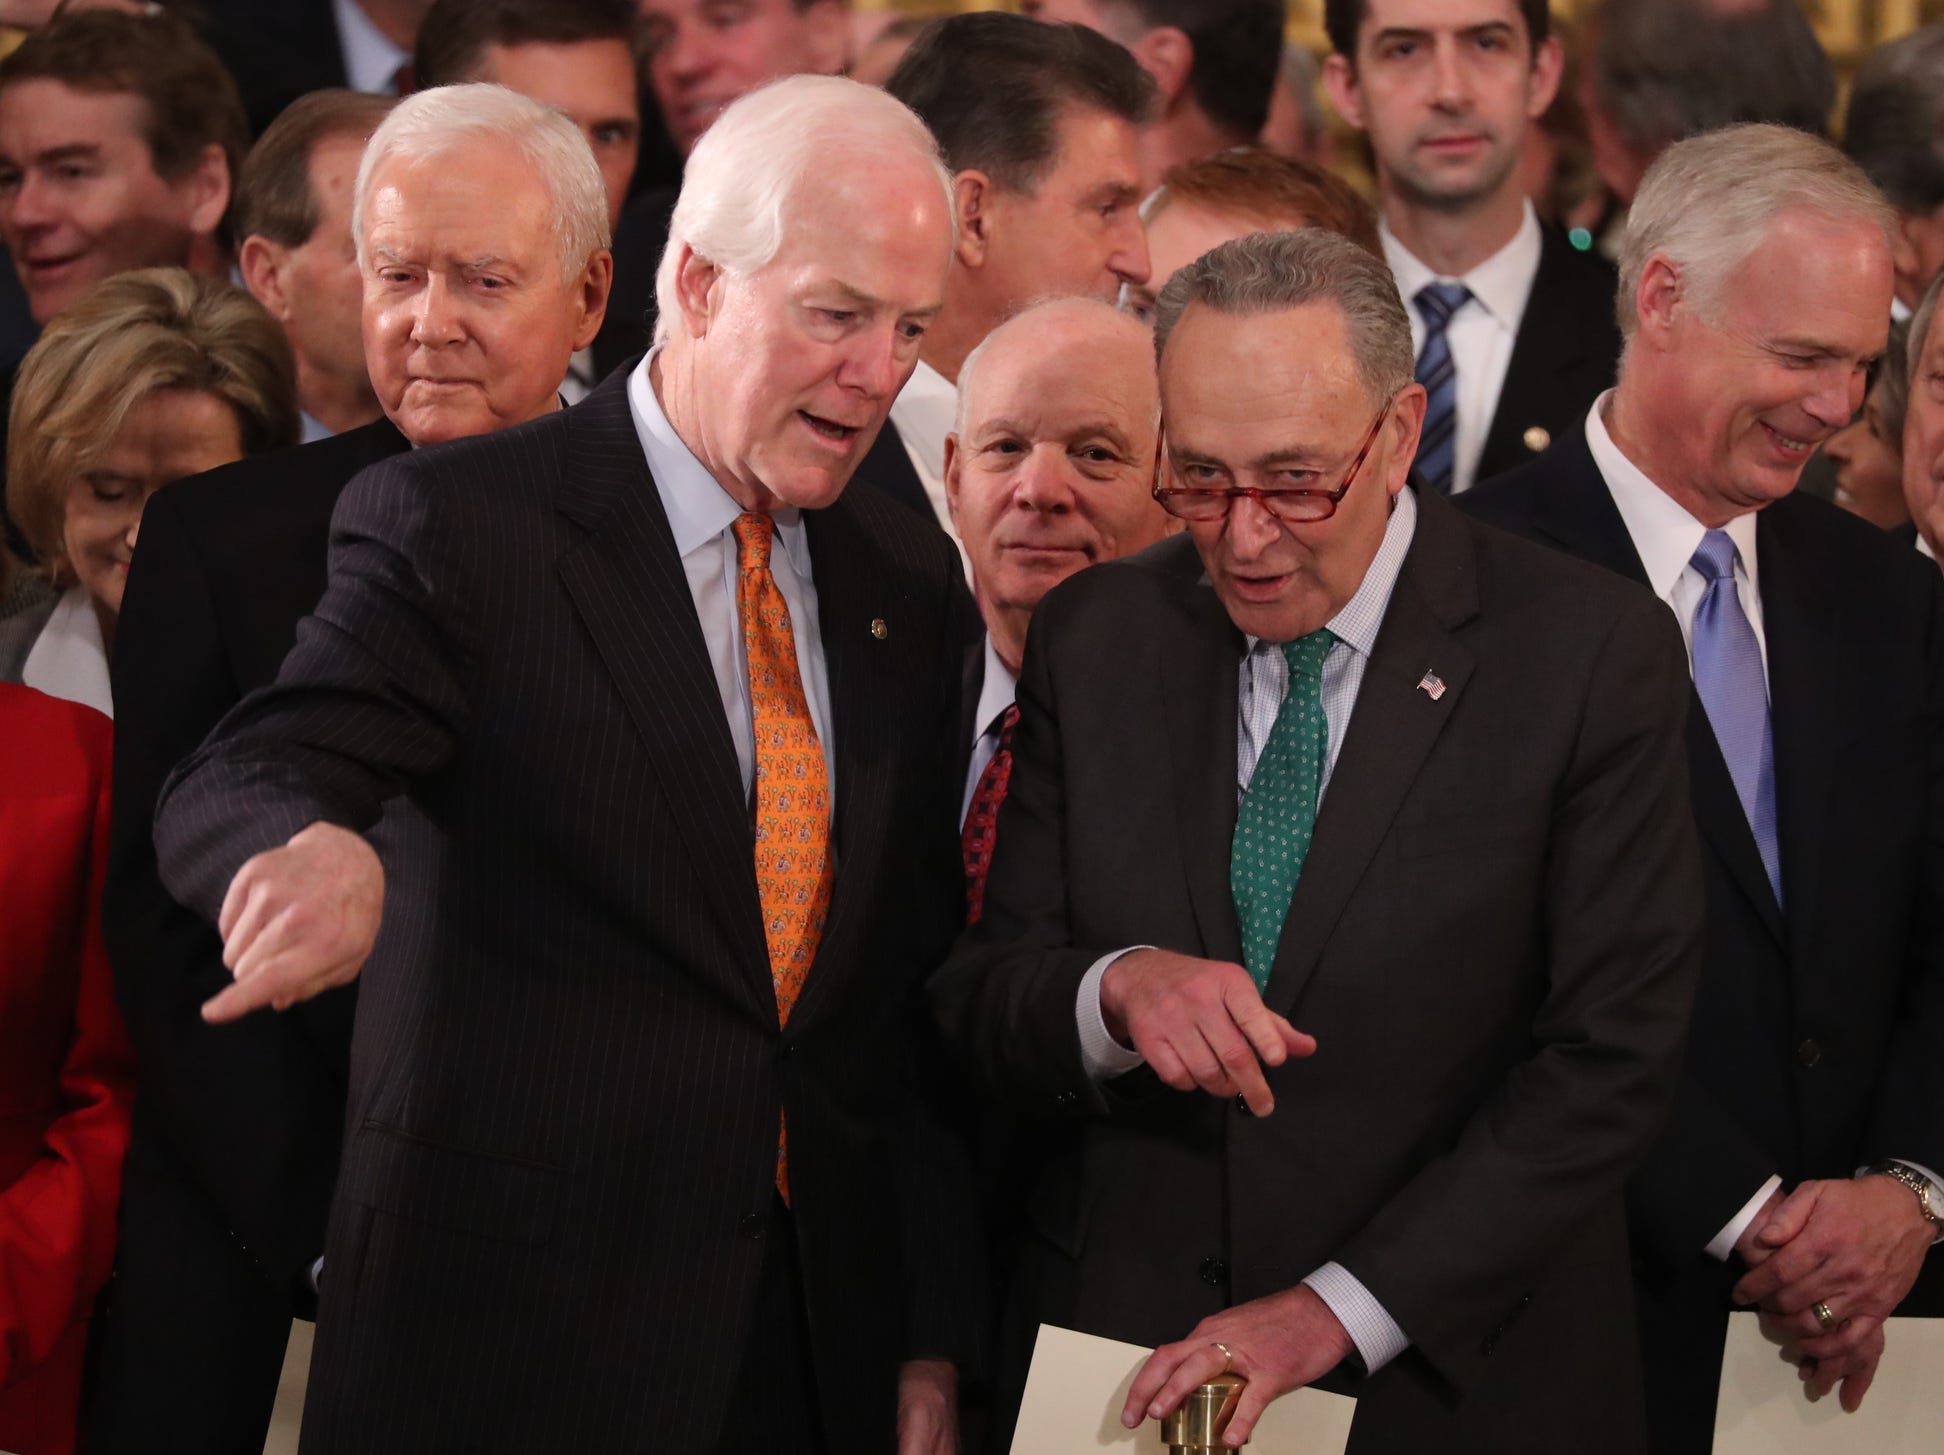 U.S. Senate Majority Whip John Cornyn and Senate Minority Leader Chuck Schumer talk while Senator Orrin Hatch (L-Rear) looks on as they attend ceremonies for the late President George H.W. Bush inside the U.S. Capitol Rotunda.  A WWII combat veteran, Bush served as a member of Congress from Texas, ambassador to the United Nations, director of the CIA, vice preside